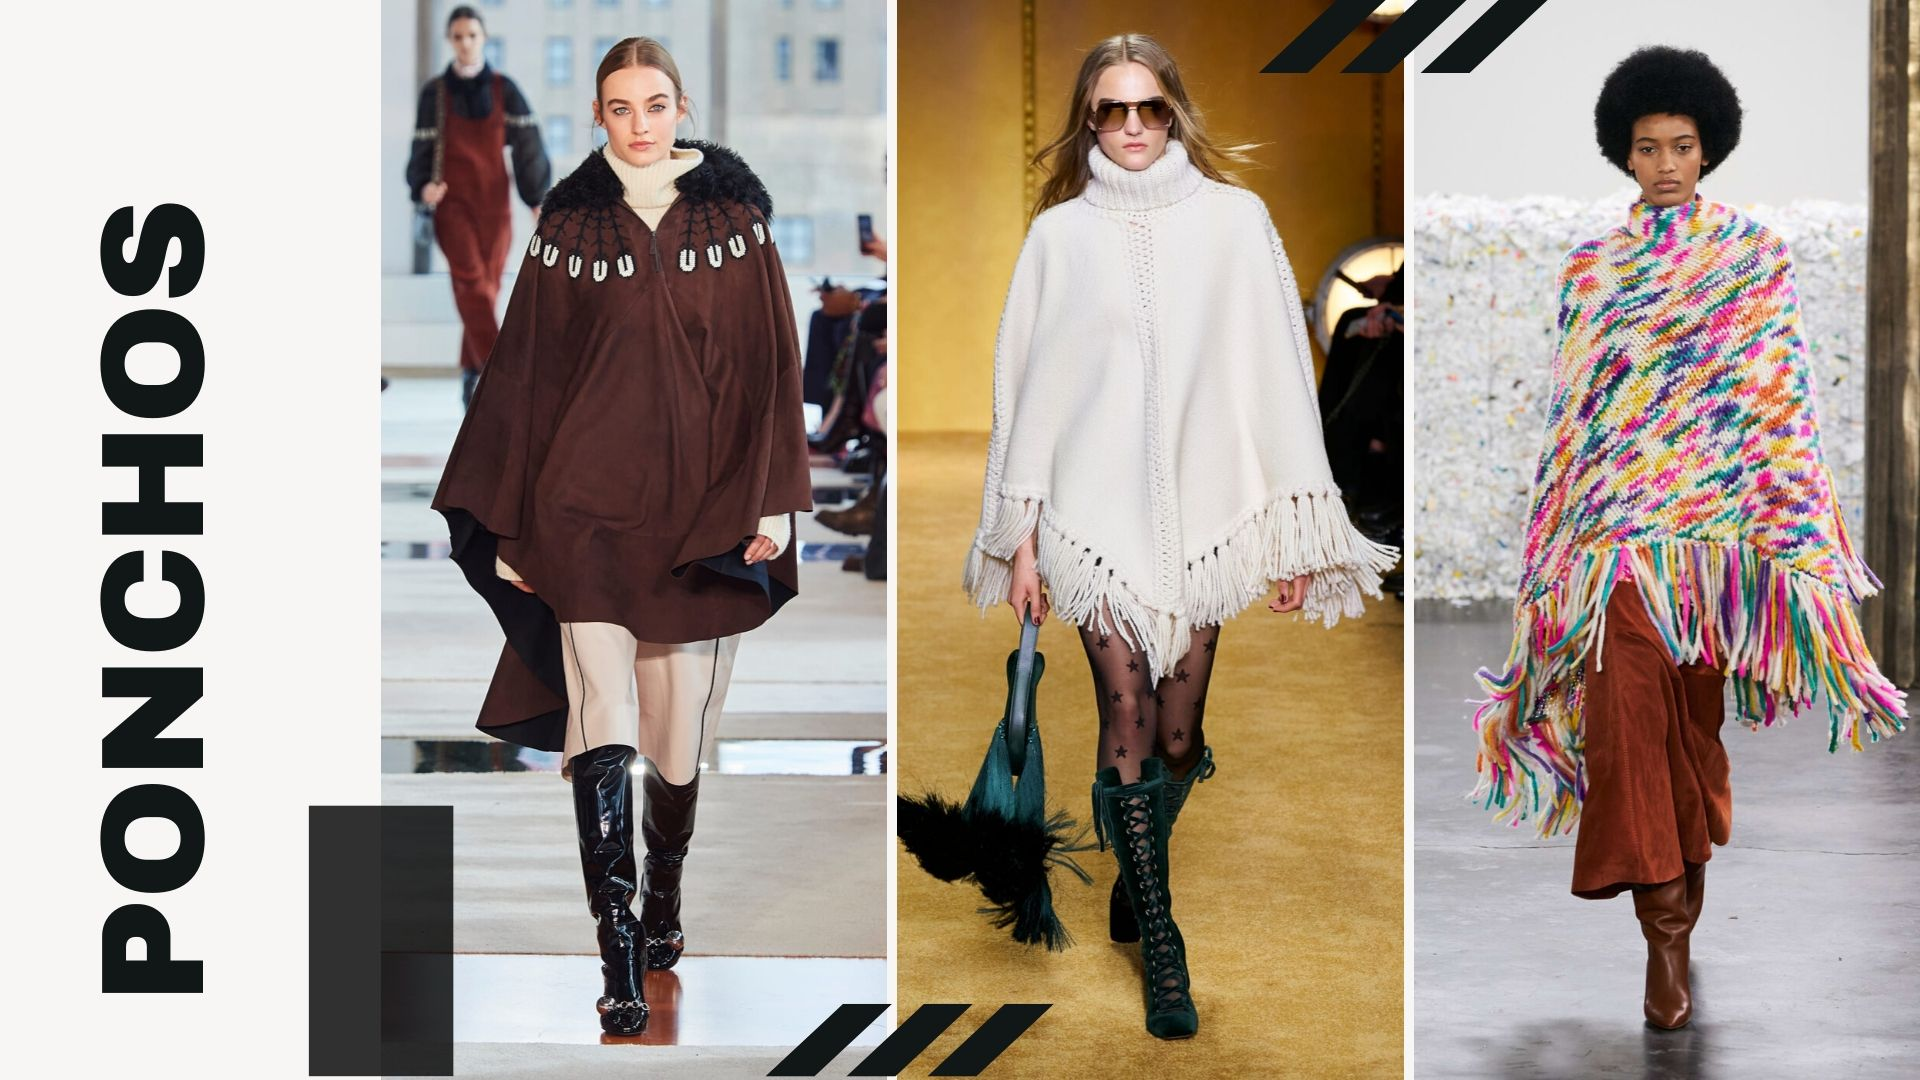 Top 5 trends from New York Fashion Week Fall/Winter 2020 - Ponchos